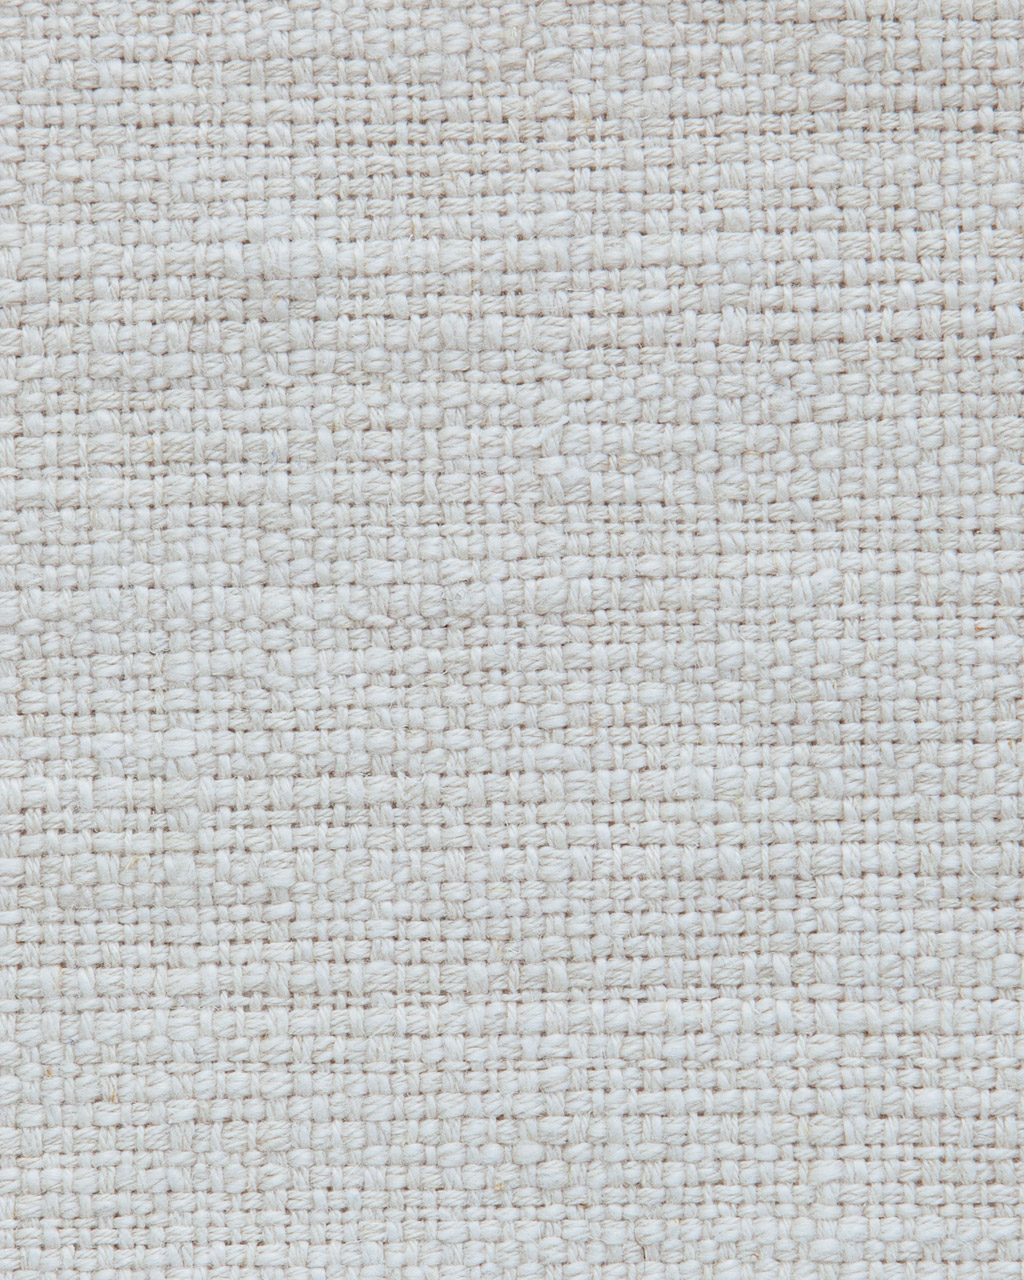 Upholstery Fabric Guide for Soft White Cotton Texture  181pct